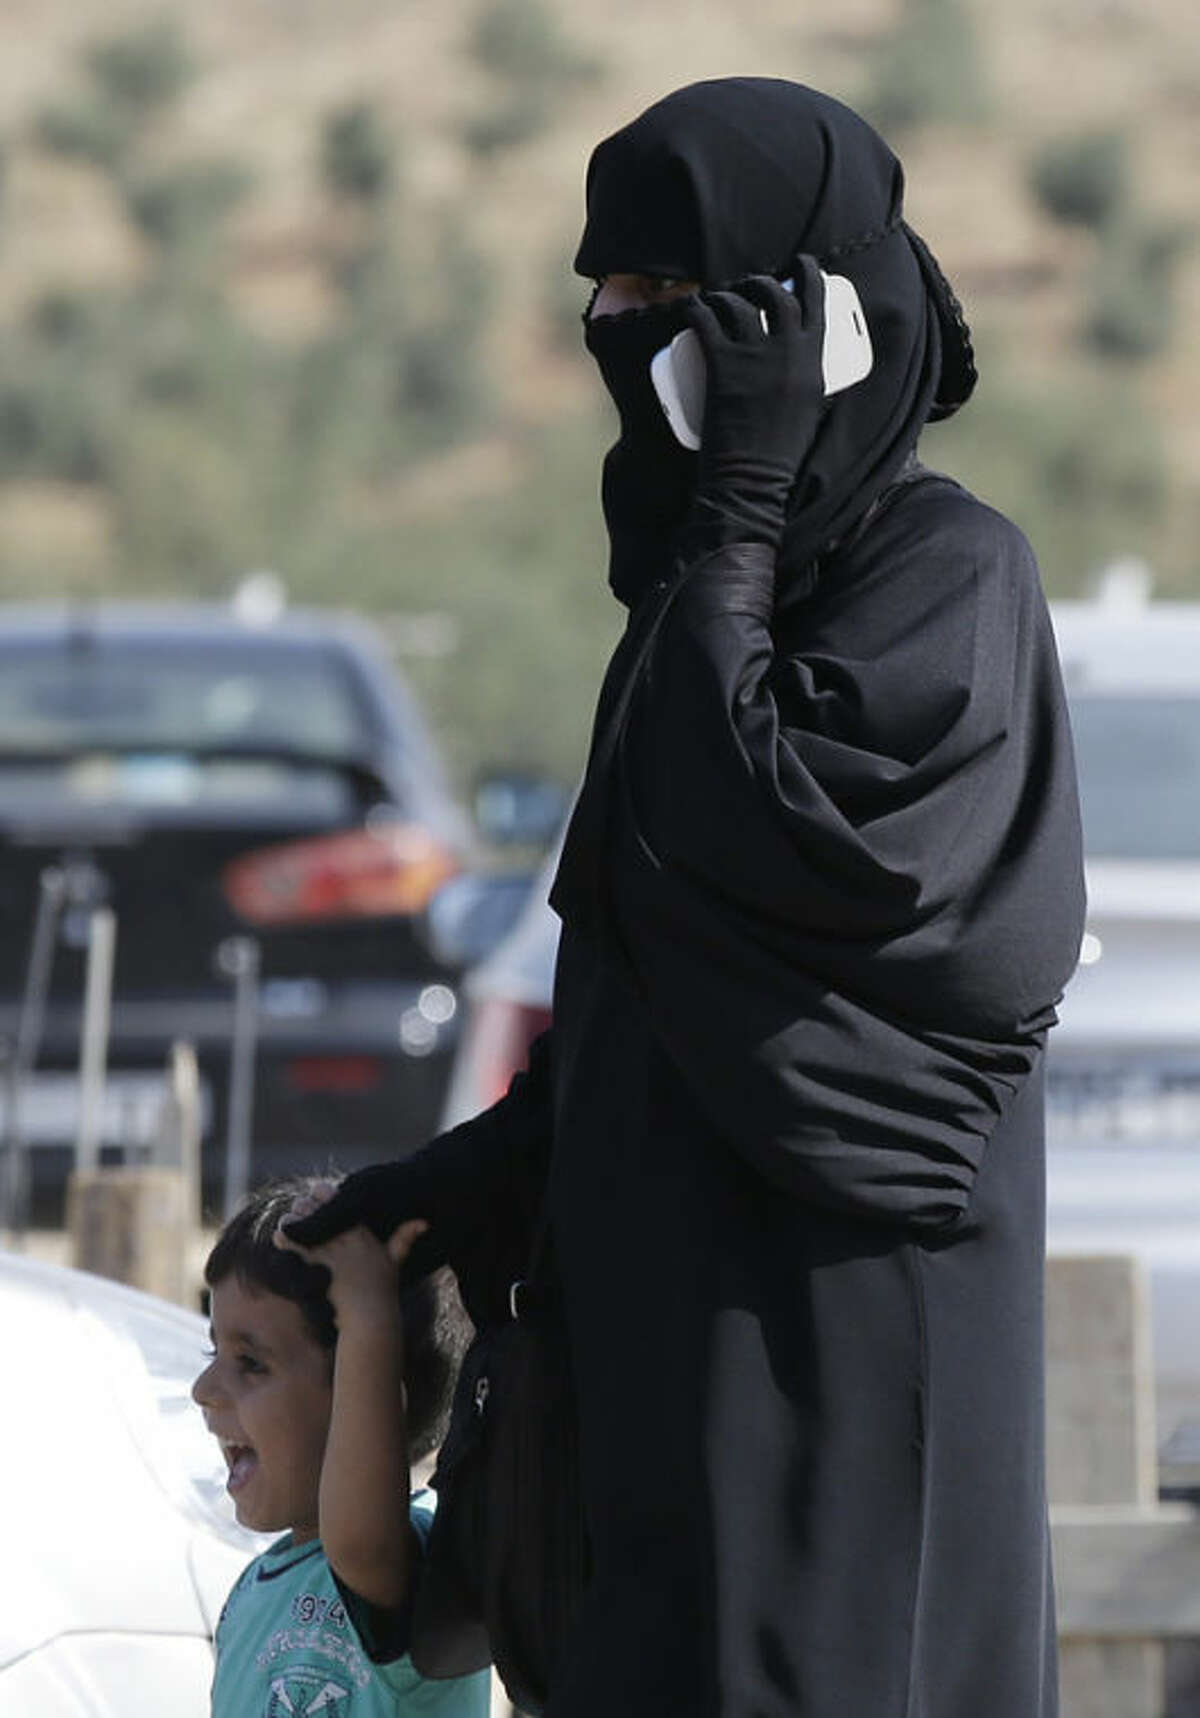 A Syrian refugee uses a mobile phone as she walks with a child after crossing the Turkish Cilvegozu gate border, Monday, Sept. 2, 2013. U.S. President Barack Obama is inviting former foe Sen. John McCain to the White House, hoping one of Congress' most intractable foreign policy hawks will help sell the idea of a U.S. military intervention in Syria to a nation deeply scarred by more than a decade of war. (AP Photo/Gregorio Borgia)